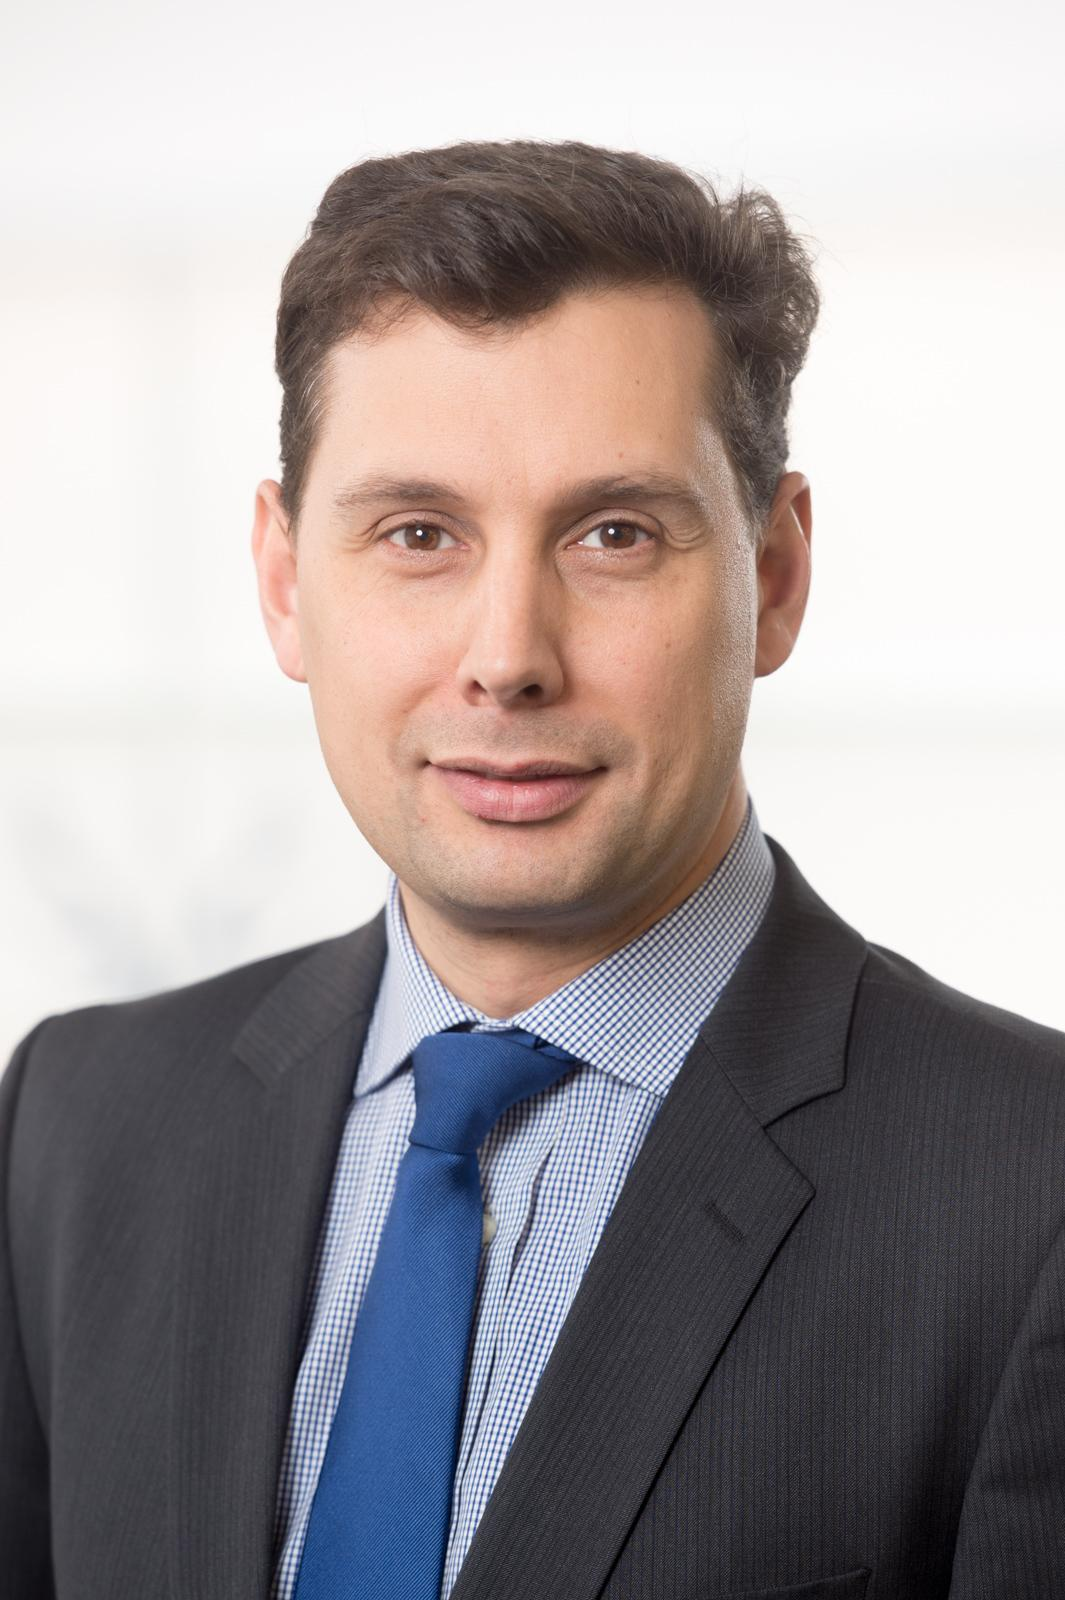 Dr. Jose Greses has been appointed to the role of Managing Director at Velo3D. Photo via Velo3D.